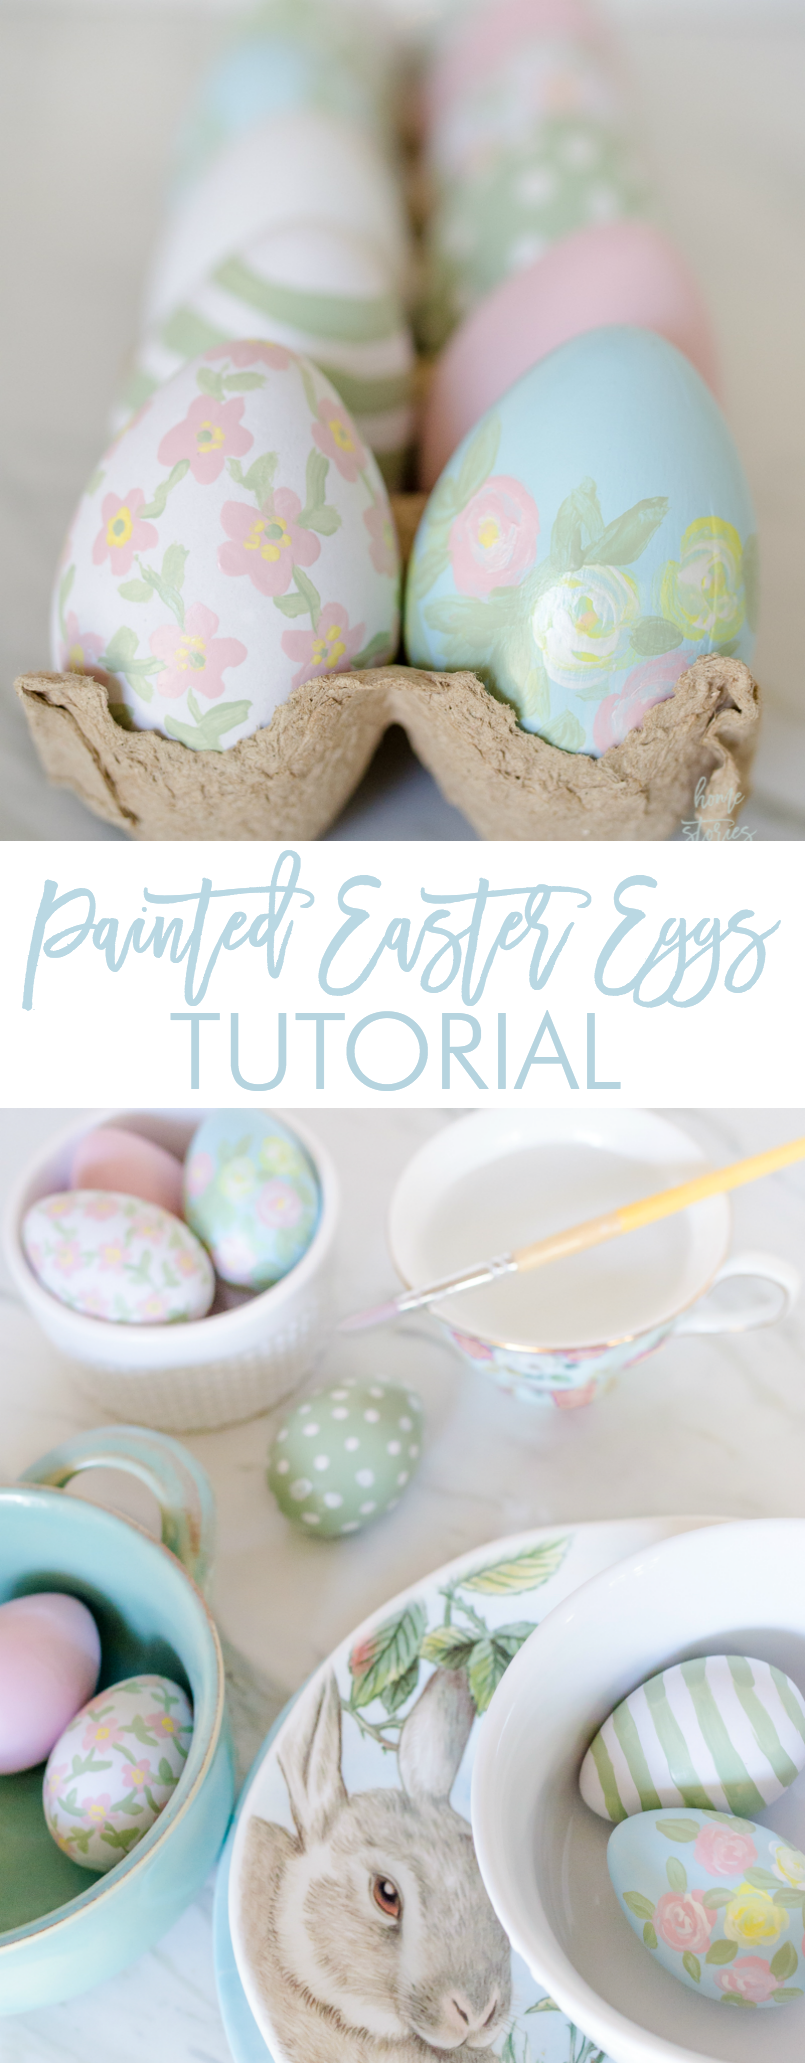 How to paint Easter eggs acrylic painted Easter egg tutorial #easteregg #eastercraft #eastertutorial #easter